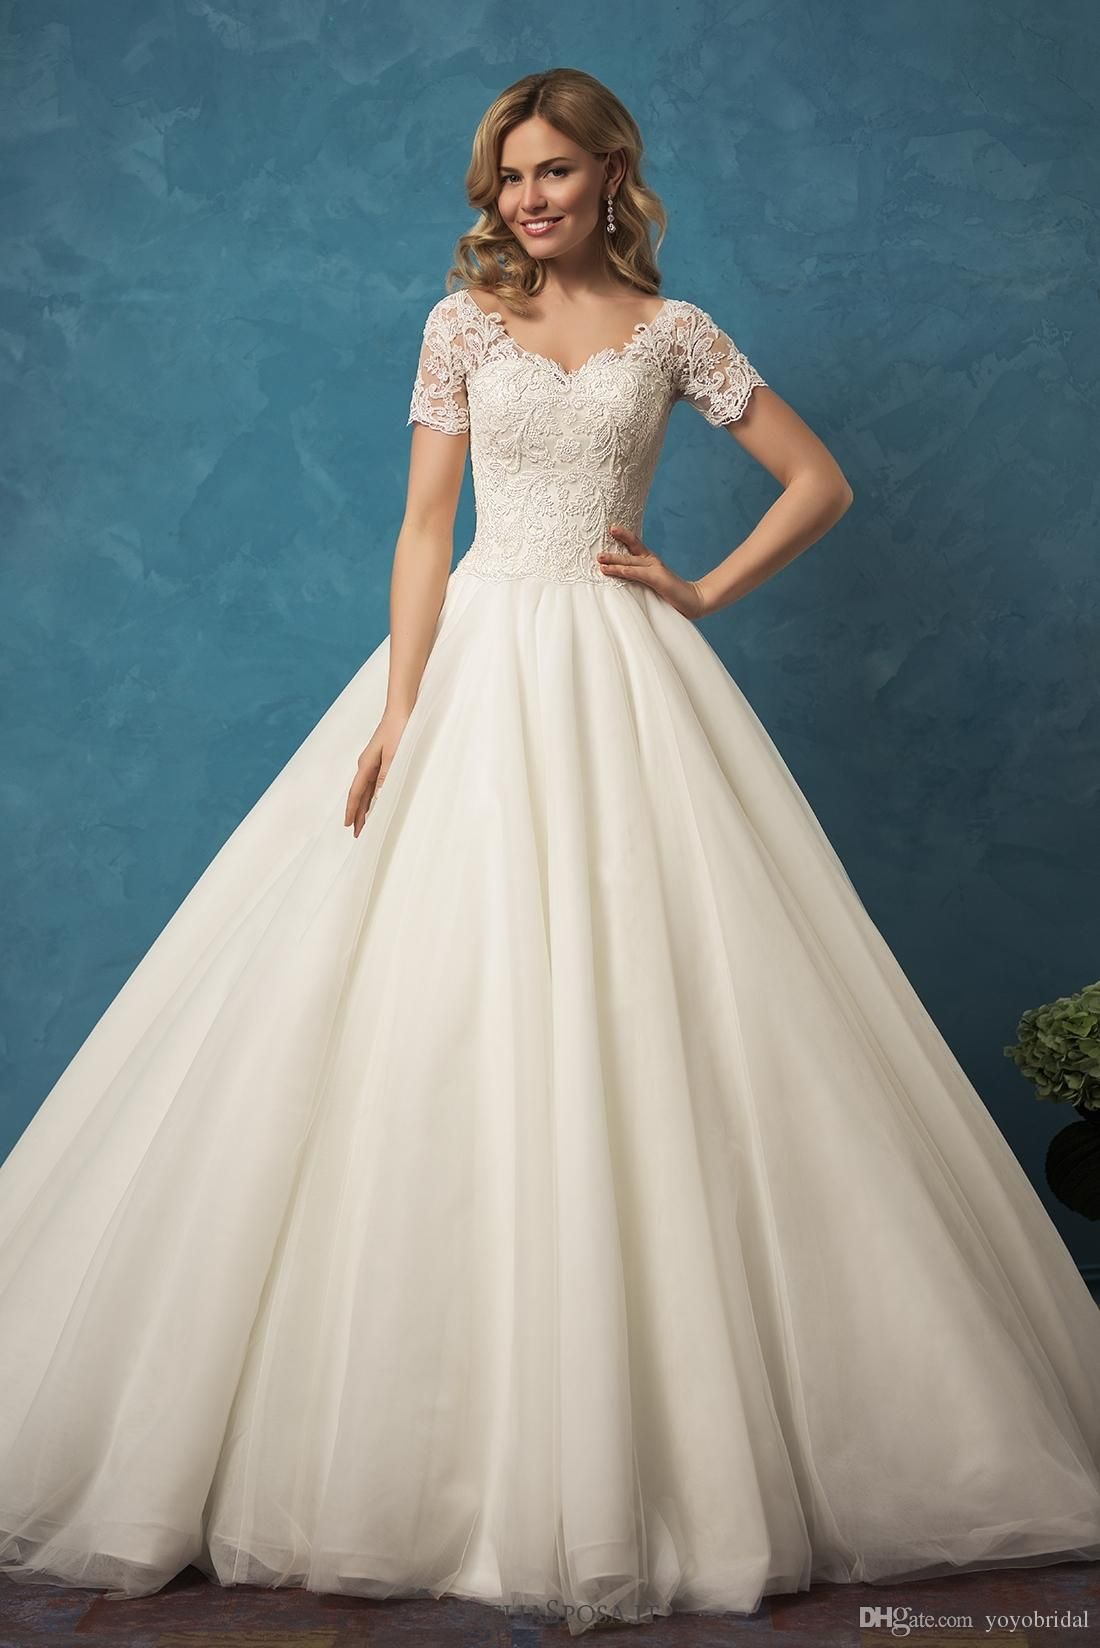 2017 Vintage Wedding Dresses Cheap V neck With Short Sleeves Lace ...